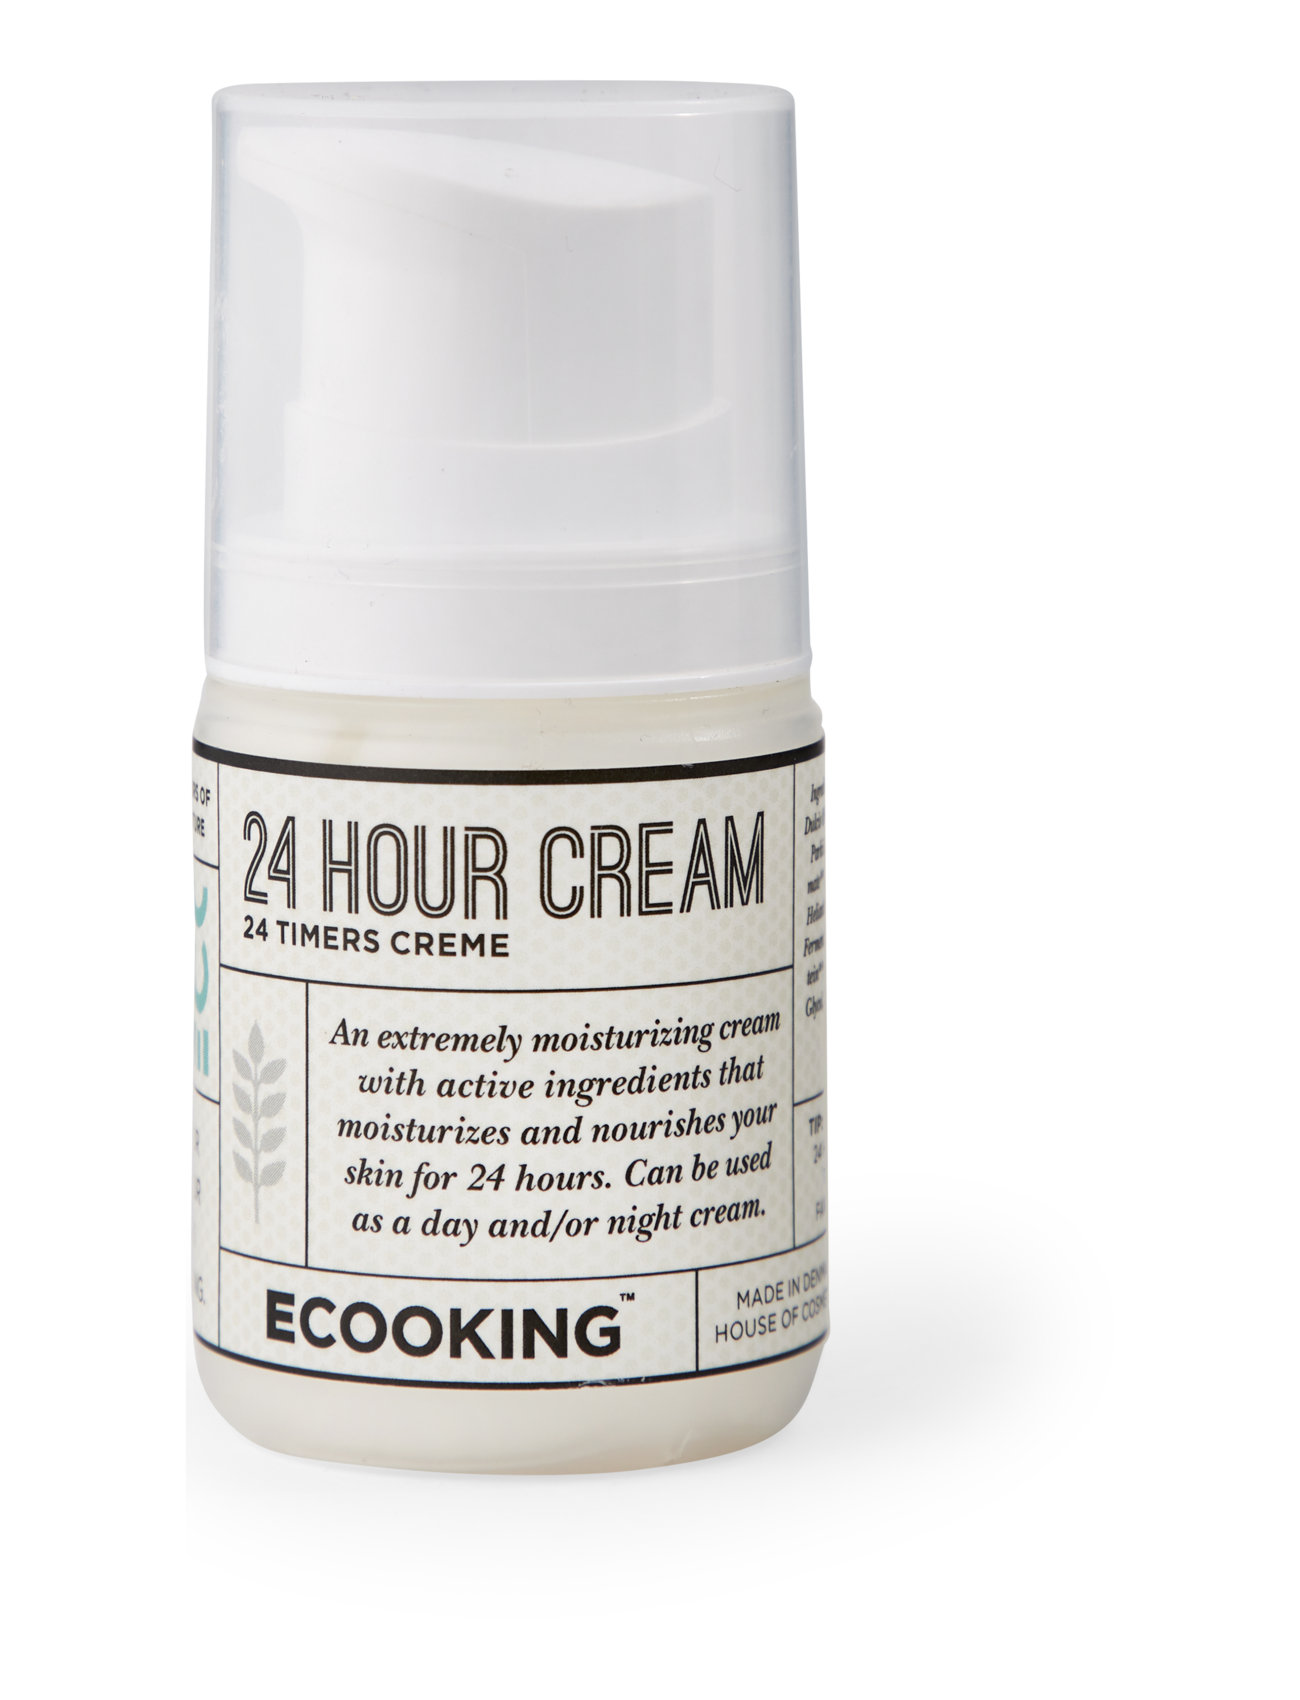 Ecooking 24 h cream - CLEAR